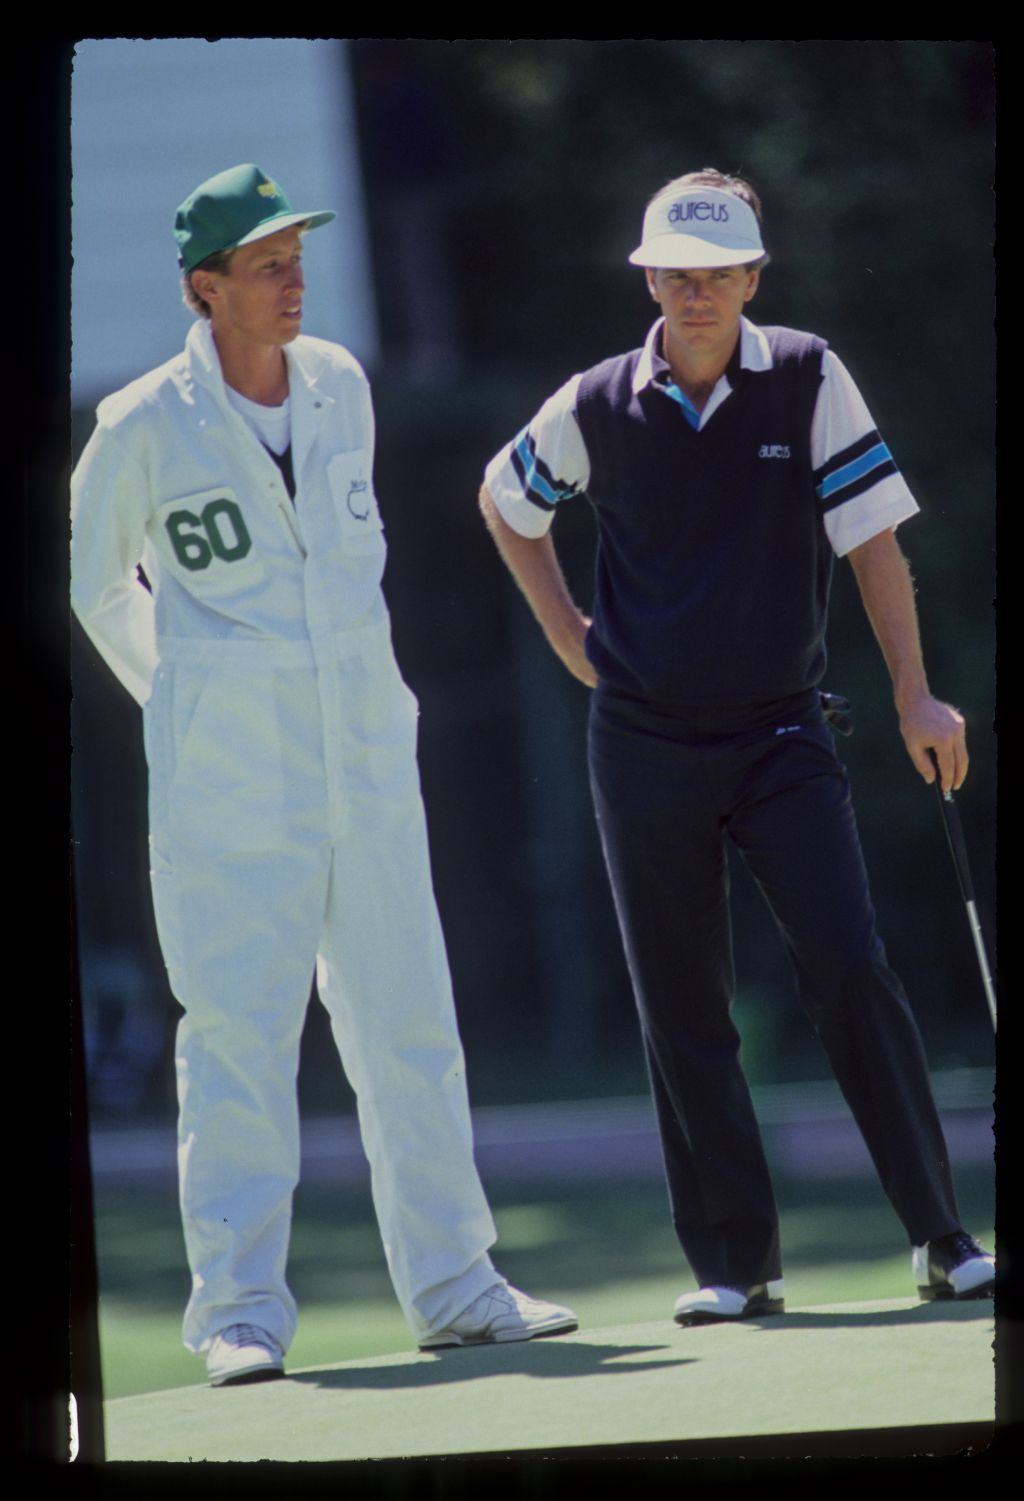 Larry Mize and his caddie on the green during the 1990 Masters